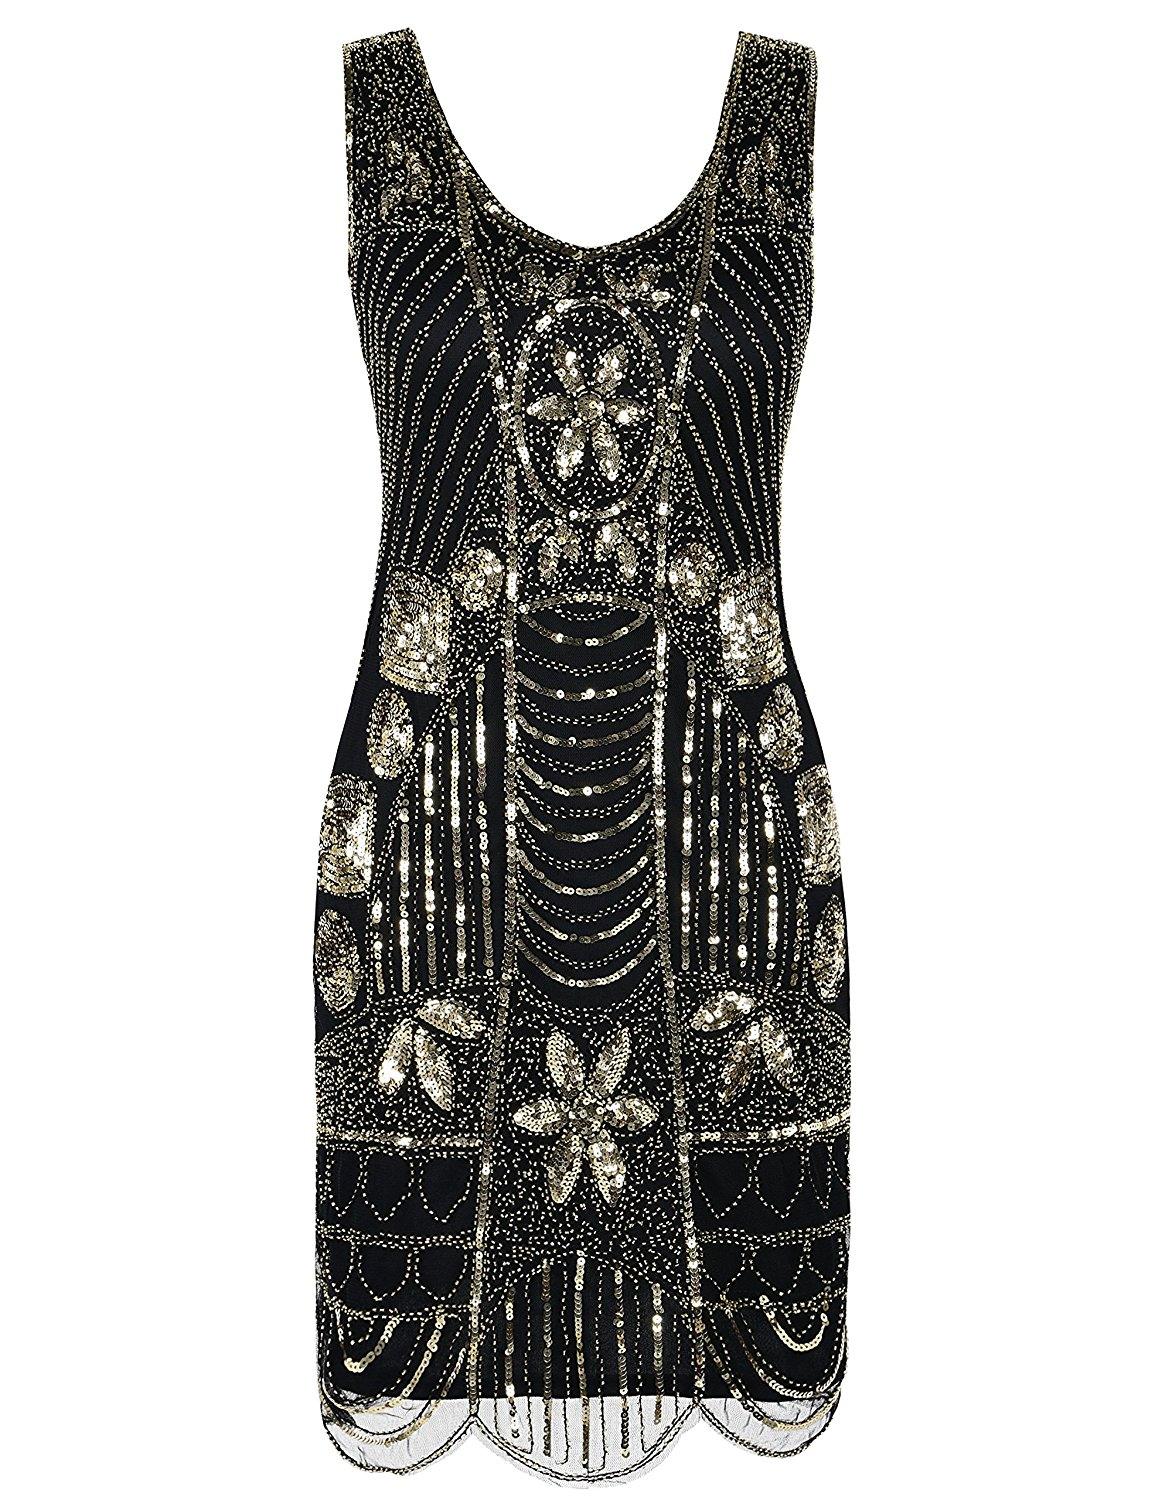 1a3473ccc2cc8 Get Quotations · PrettyGuide Women's 1920s Flapper Dress Gatsby Sequin  Scalloped Inspired Cocktail Dress